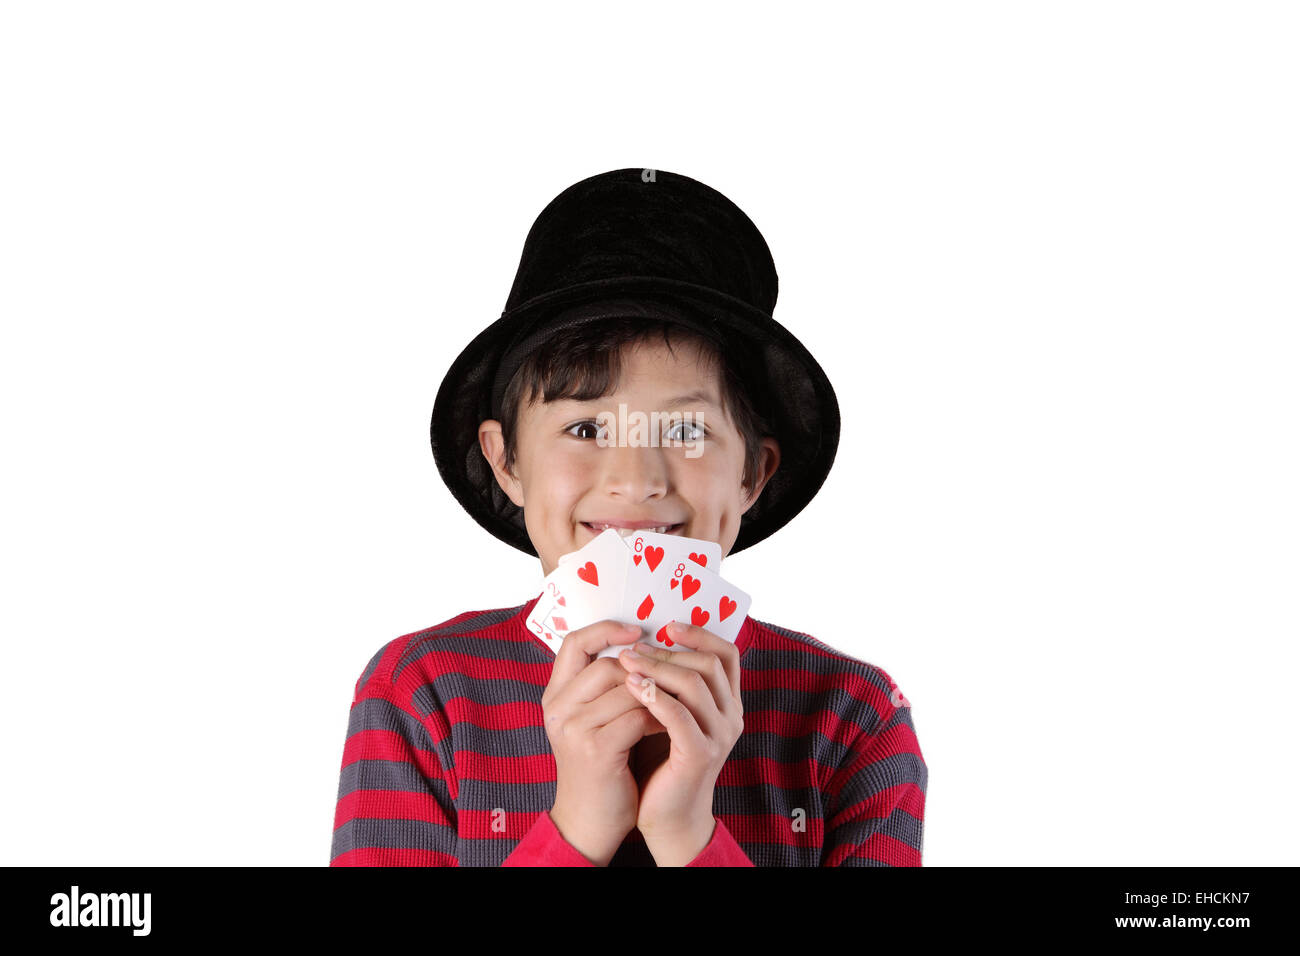 Young magician boy on isolated background - Stock Image